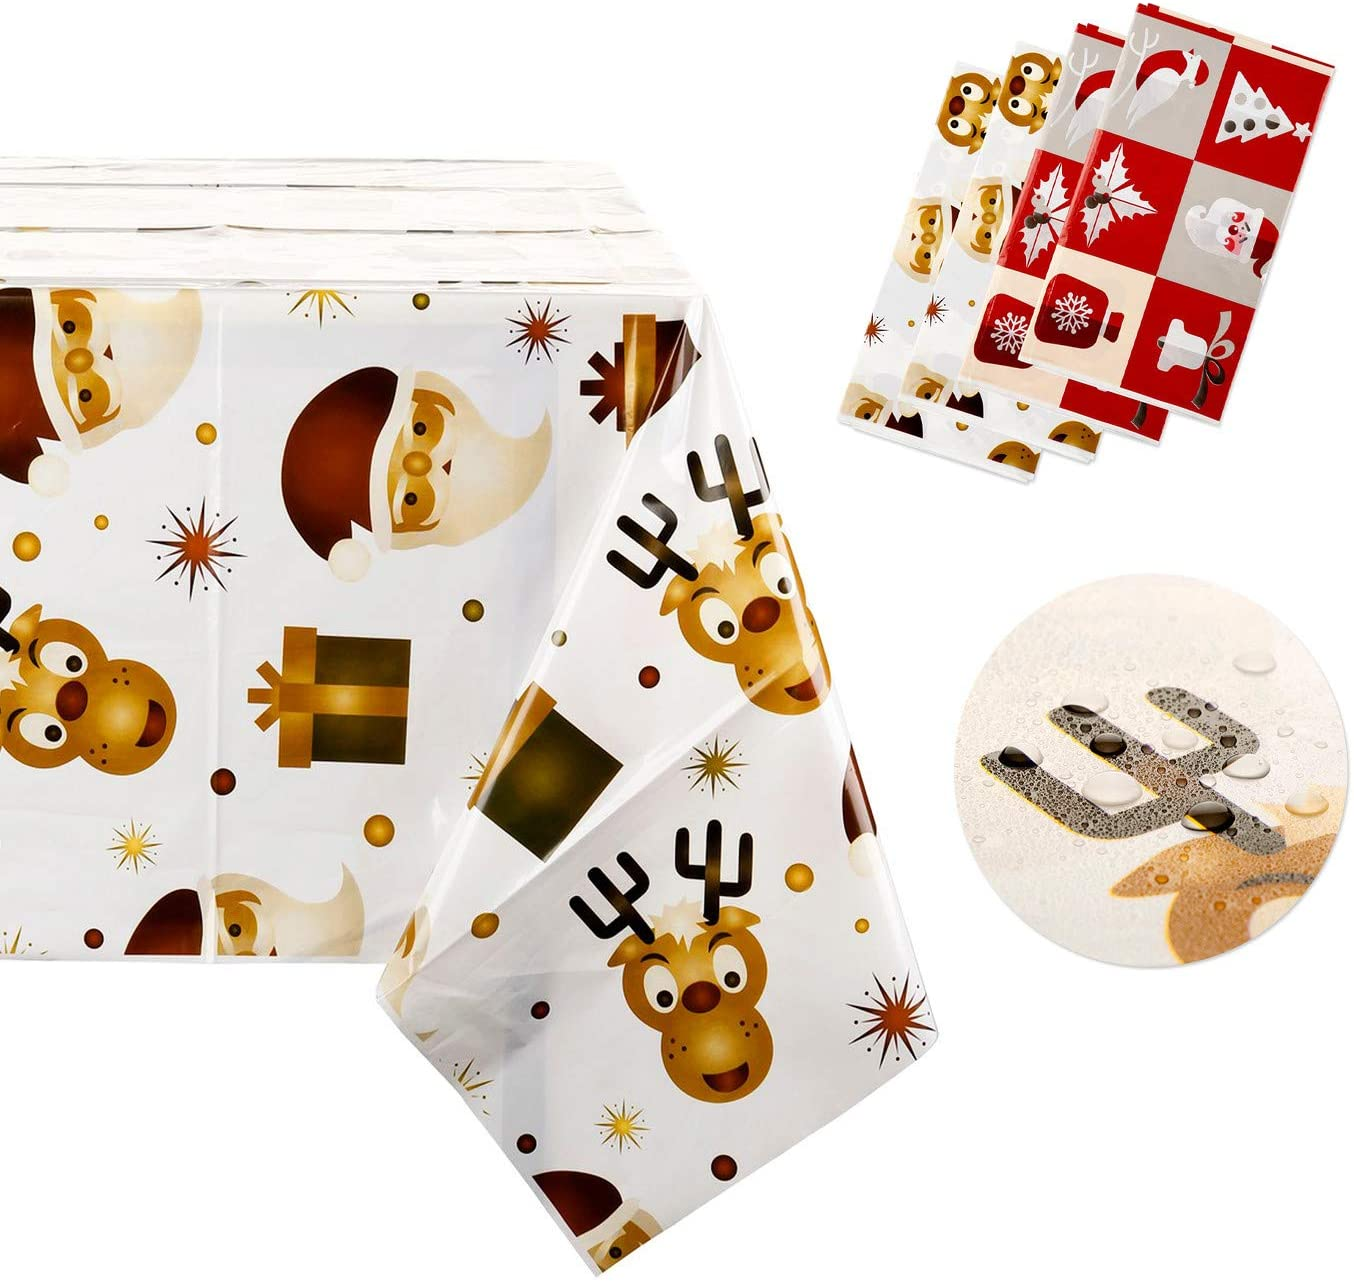 Mangsen 4 Pack Disposable Christmas Tablecloth 70.9 x 43.3 Inch Cartoon Printed Waterproof Plastic Oblong Party Tablecloth for Rectangle Table